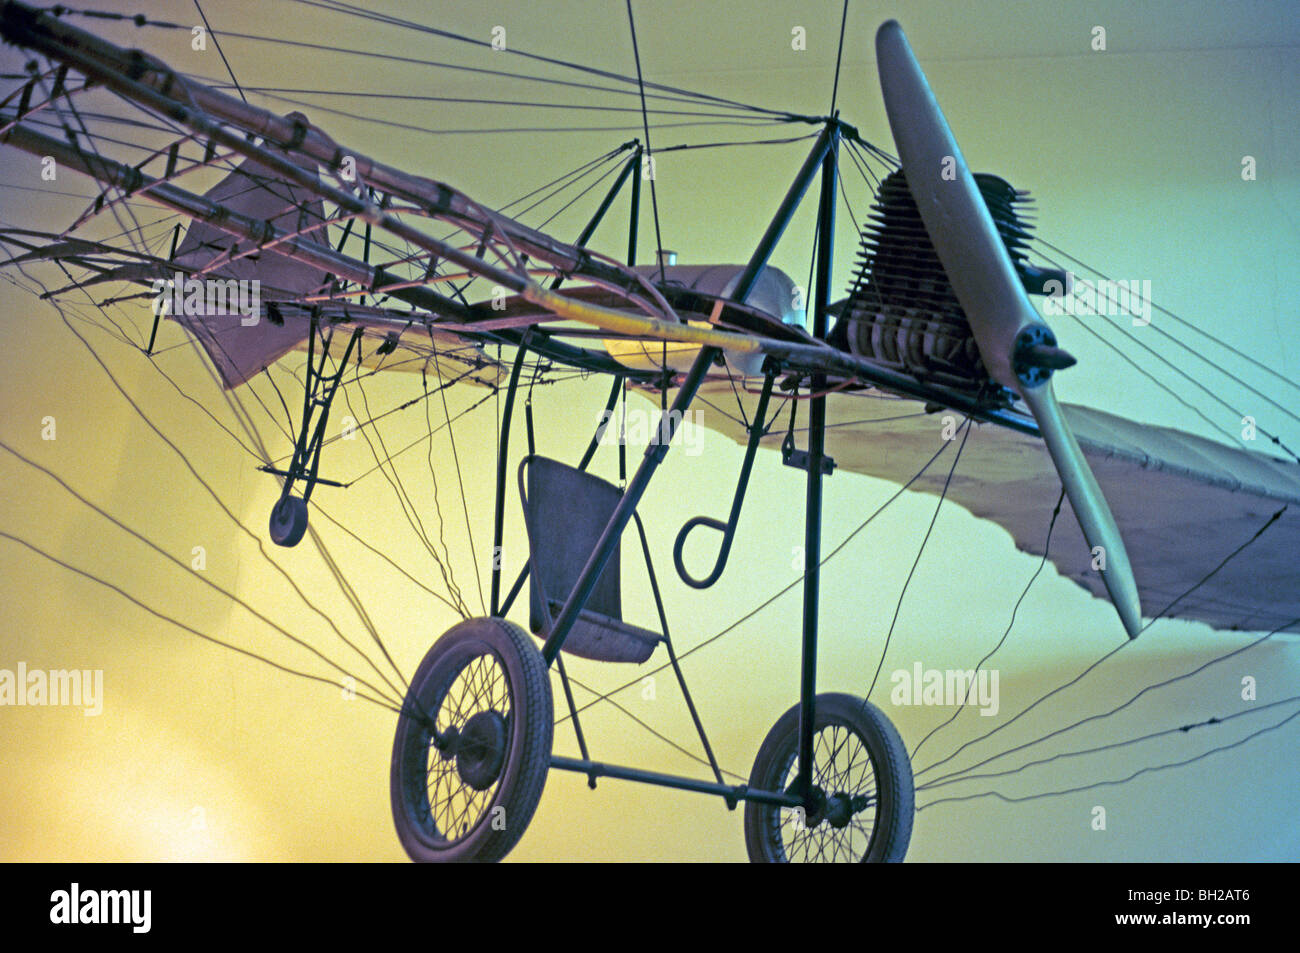 copy of the airoplane 'Libelle' (dragonfly) made by Hans Grade at the museum, Magdeburg, capital city of - Stock Image